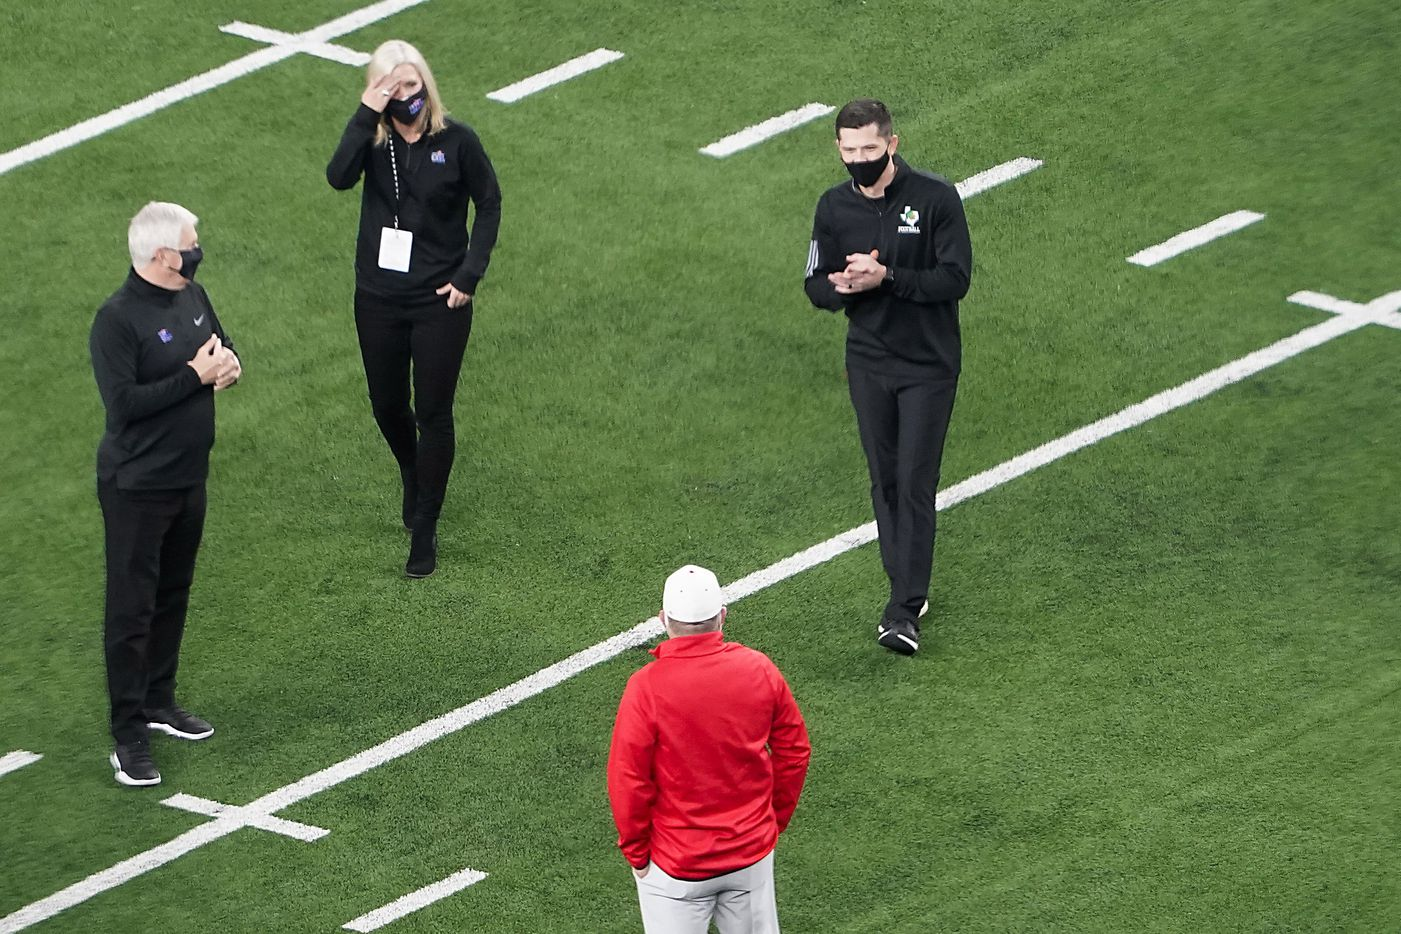 Southlake Carroll head coach Riley Dodge (top right) meets with his father, Austin Westlake head coach Todd Dodge (bottom) on the field before the two teams play for the Class 6A Division I state football championship at AT&T Stadium on Saturday, Jan. 16, 2021, in Arlington, Texas.